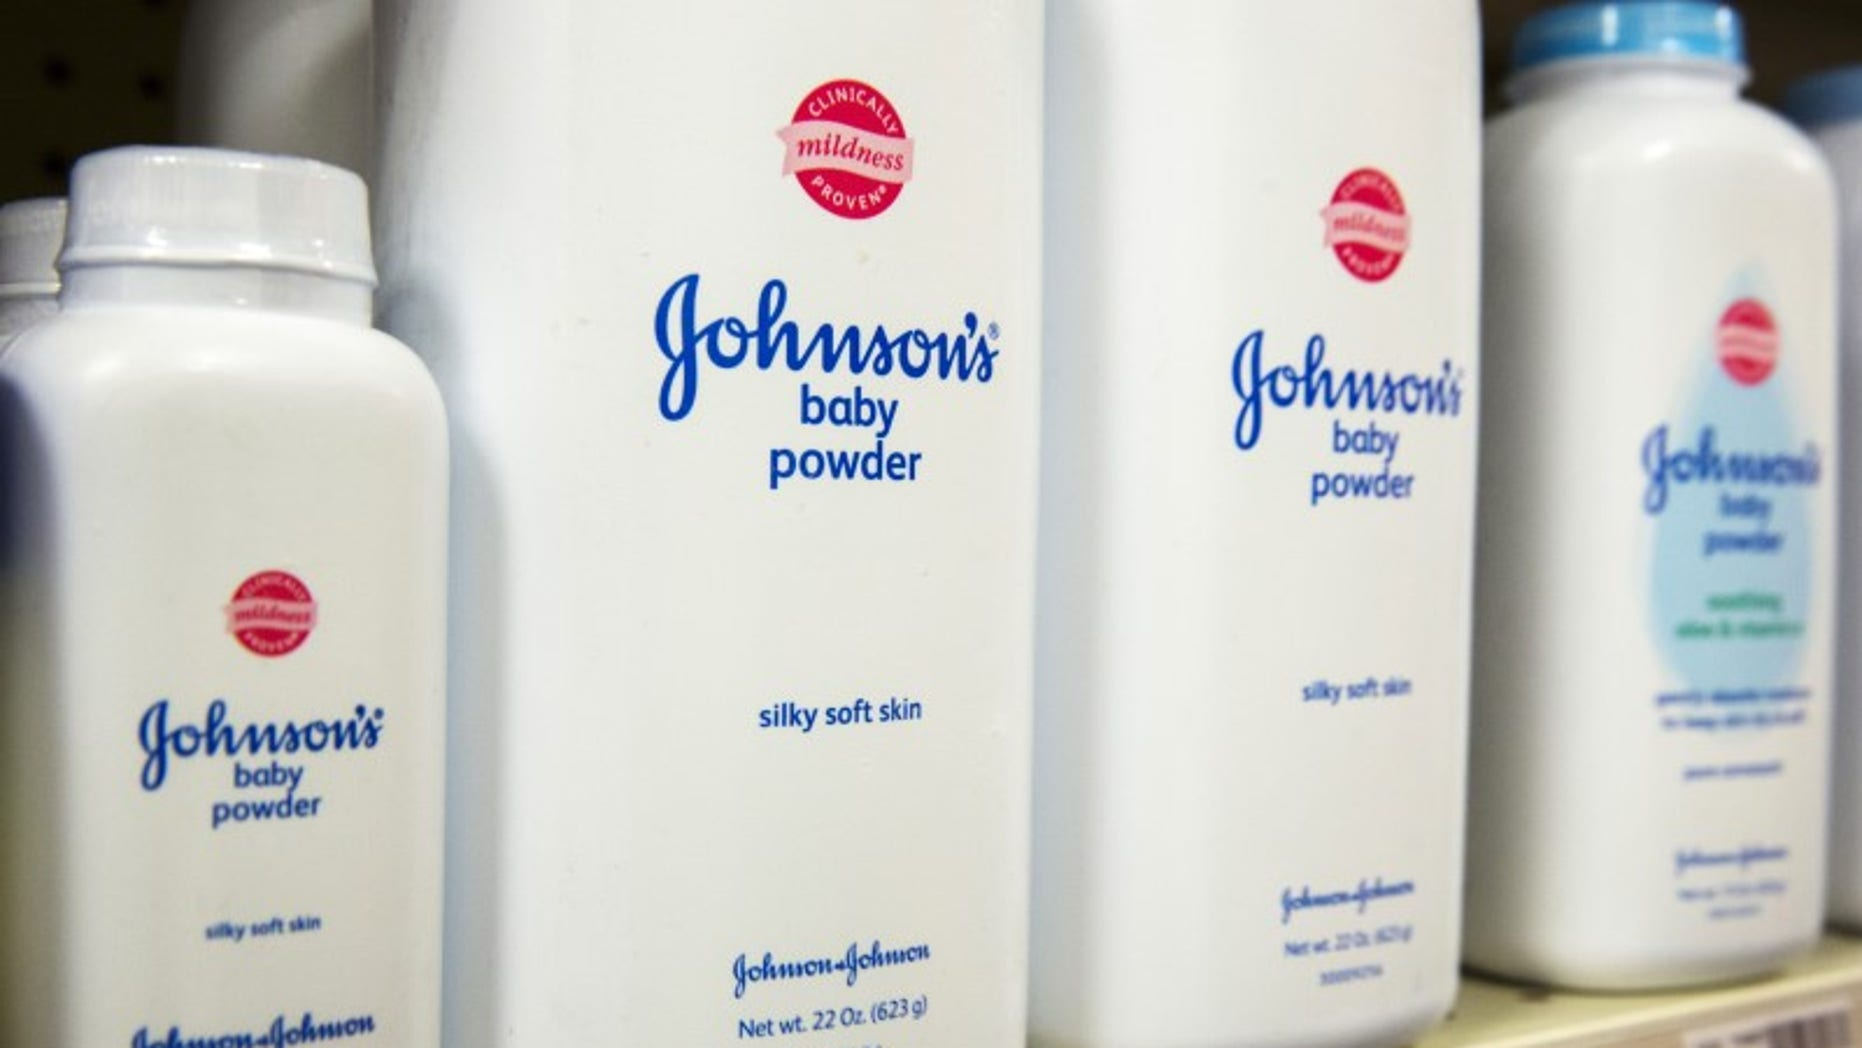 J&J stock tumbles after Reuters reports it hid asbestos in talc